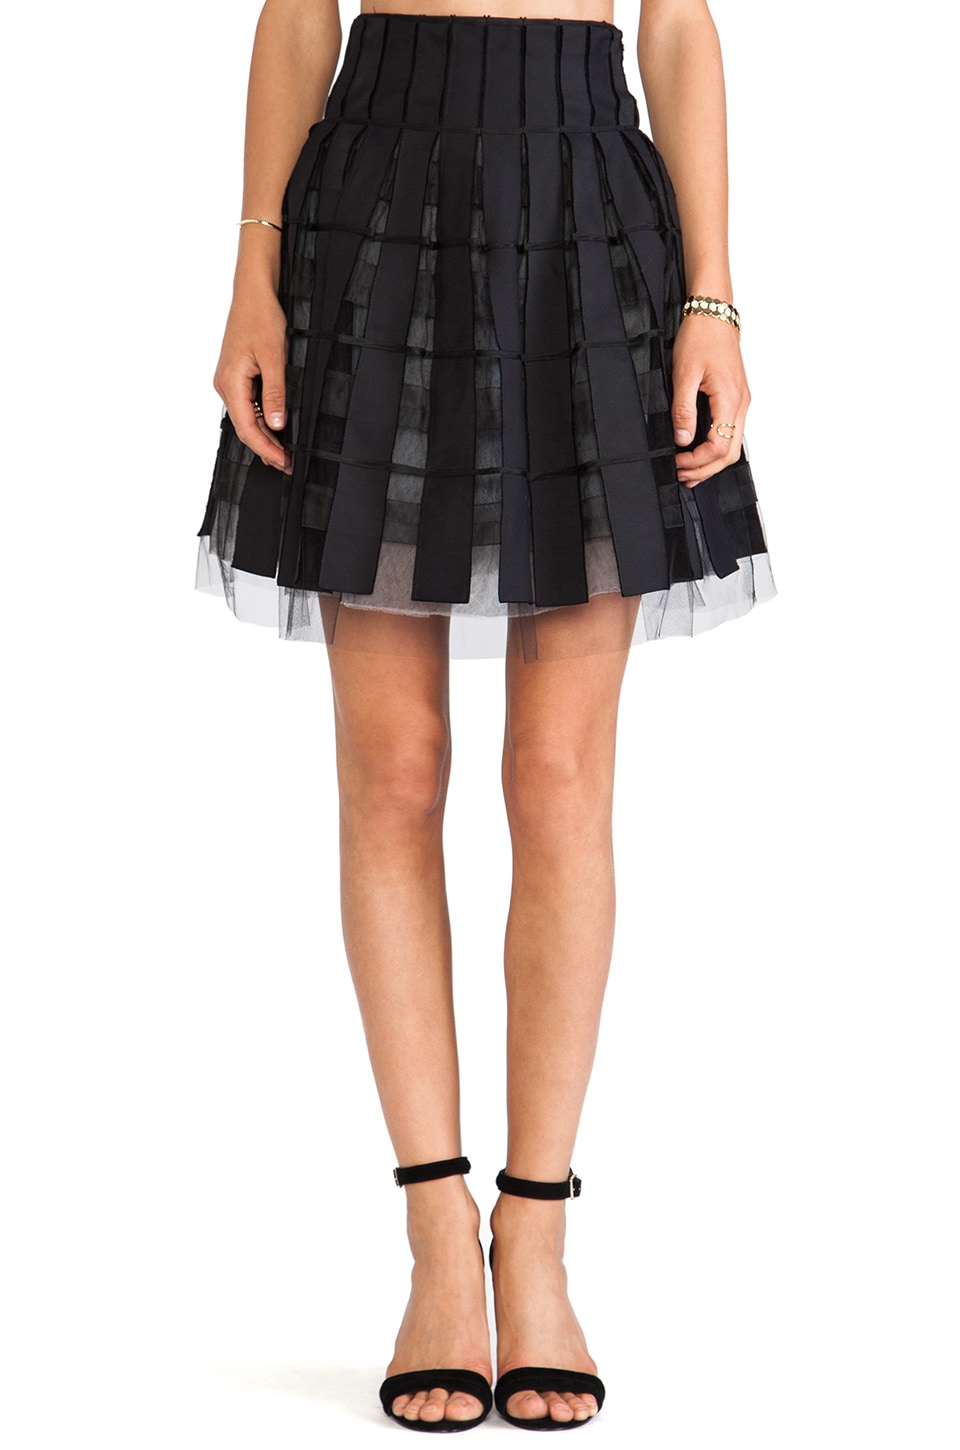 Sachin & Babi Mia Skirt in Black